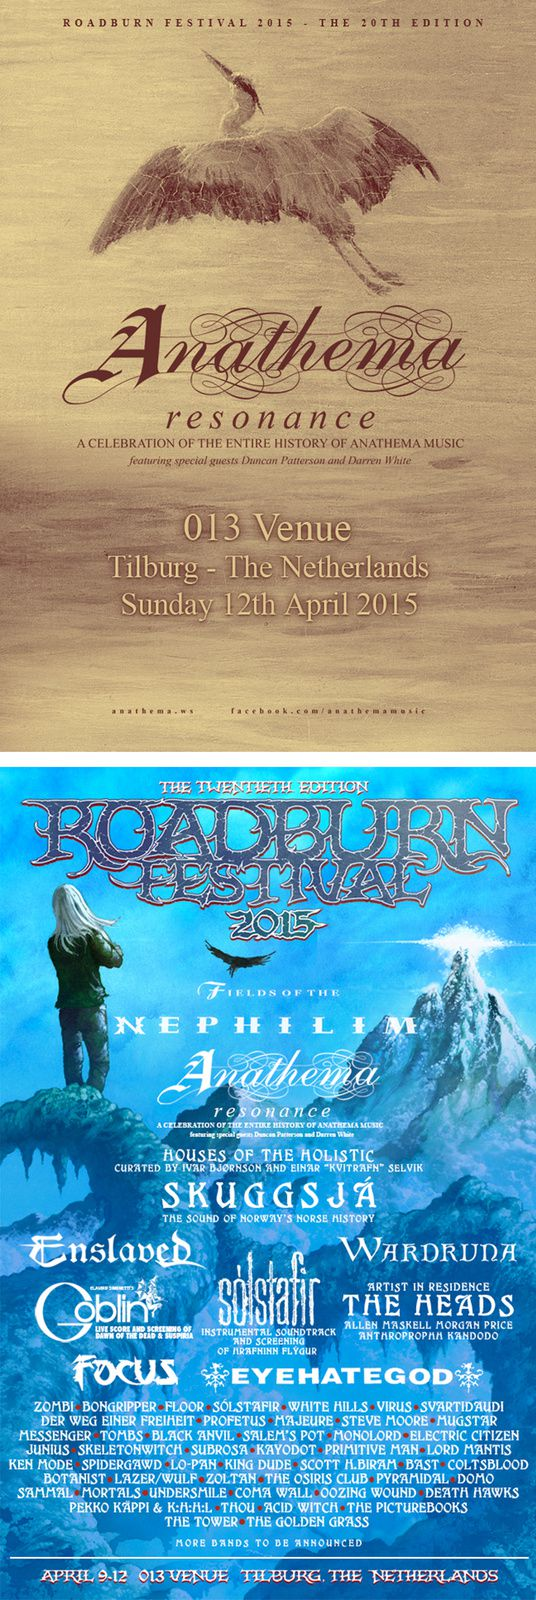 ANATHEMA will play a special show at the ROADBURN 2015